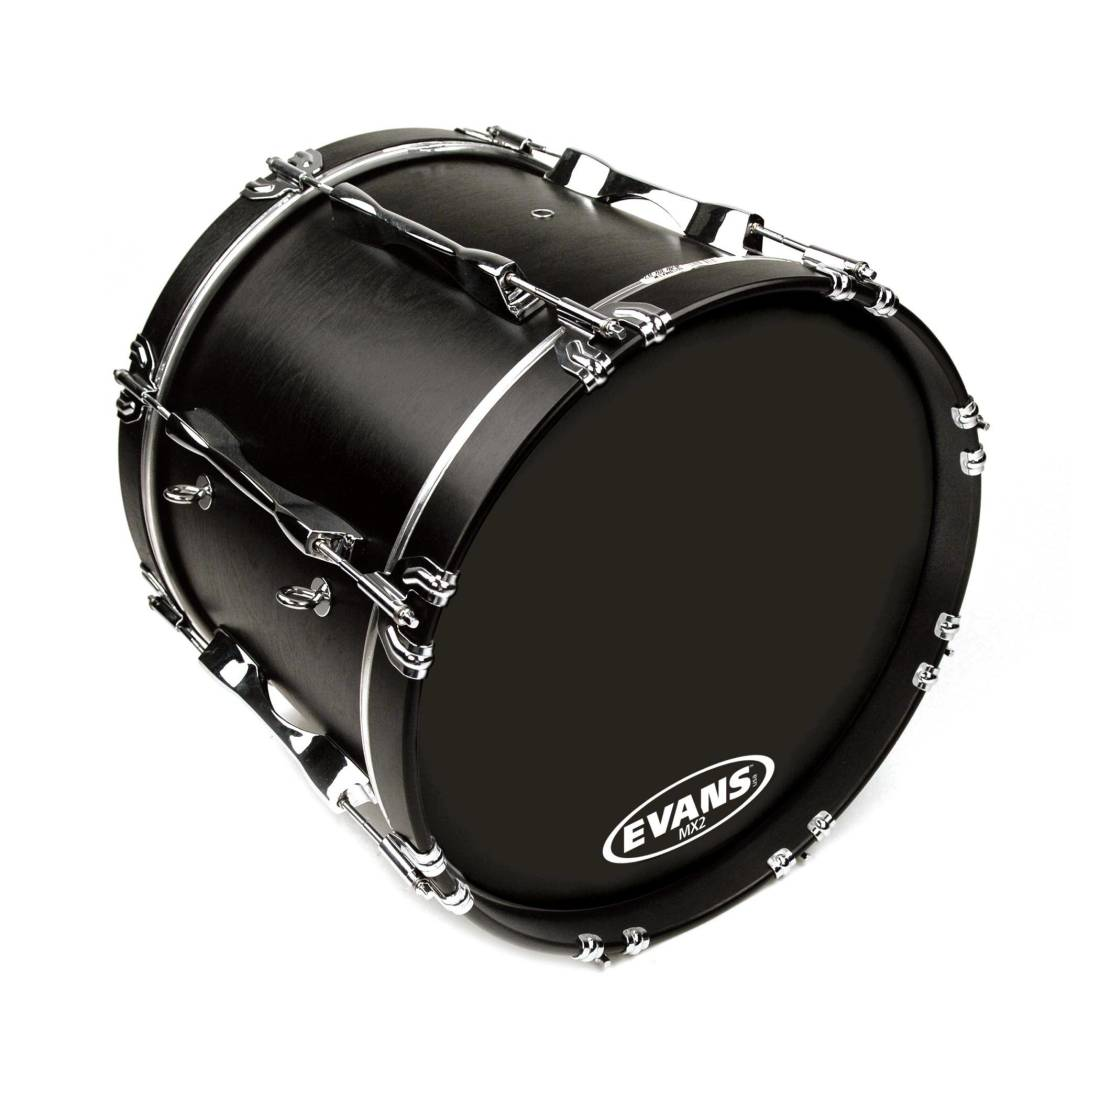 evans mx2 black marching bass drum head 18 inch long mcquade musical instruments. Black Bedroom Furniture Sets. Home Design Ideas